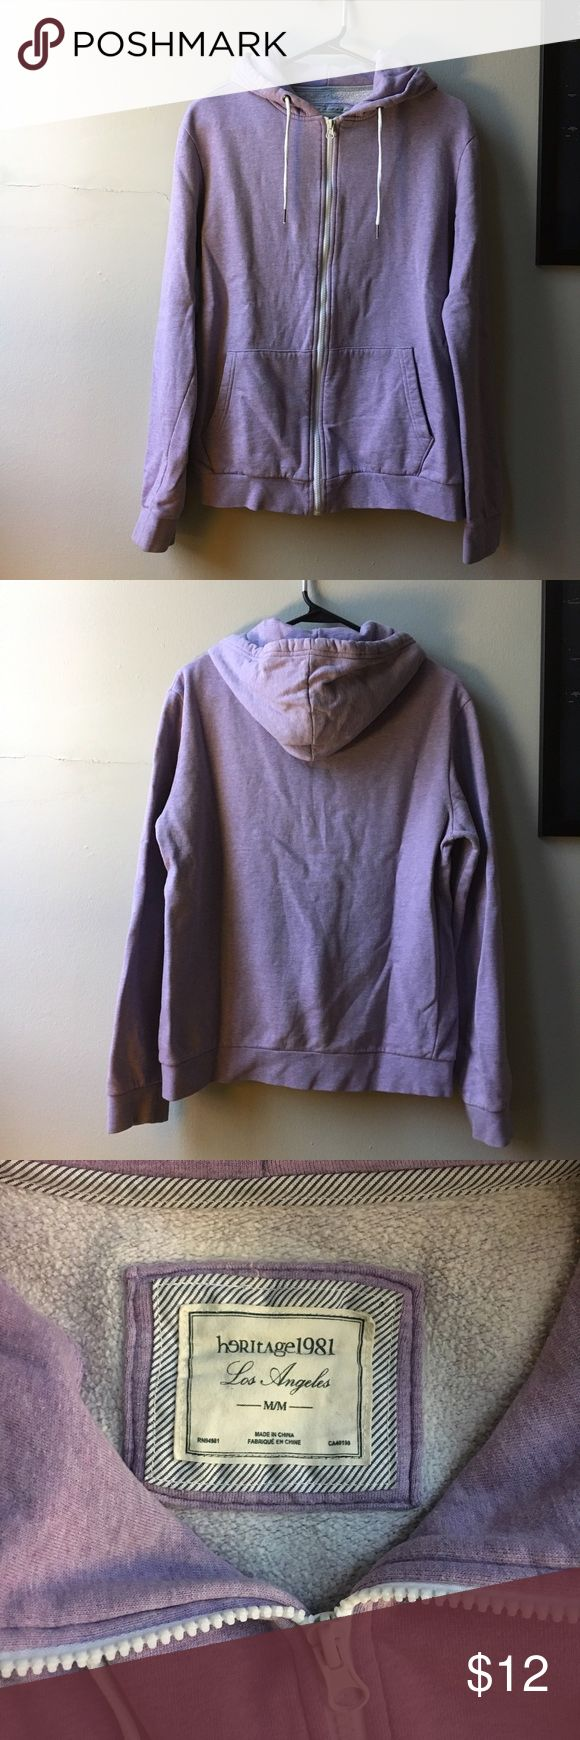 Light Purple Zip Up Sweatshirt Cozy purple sweatshirt with white details. Gently worn but in good condition. I purchased this with two holes in the side, but sewed them up as seen in the 4th photo. Hardly noticeable because the defects are under the arm. Size is a men's medium, so it fits like a medium/large. Forever 21 Sweaters Zip Up